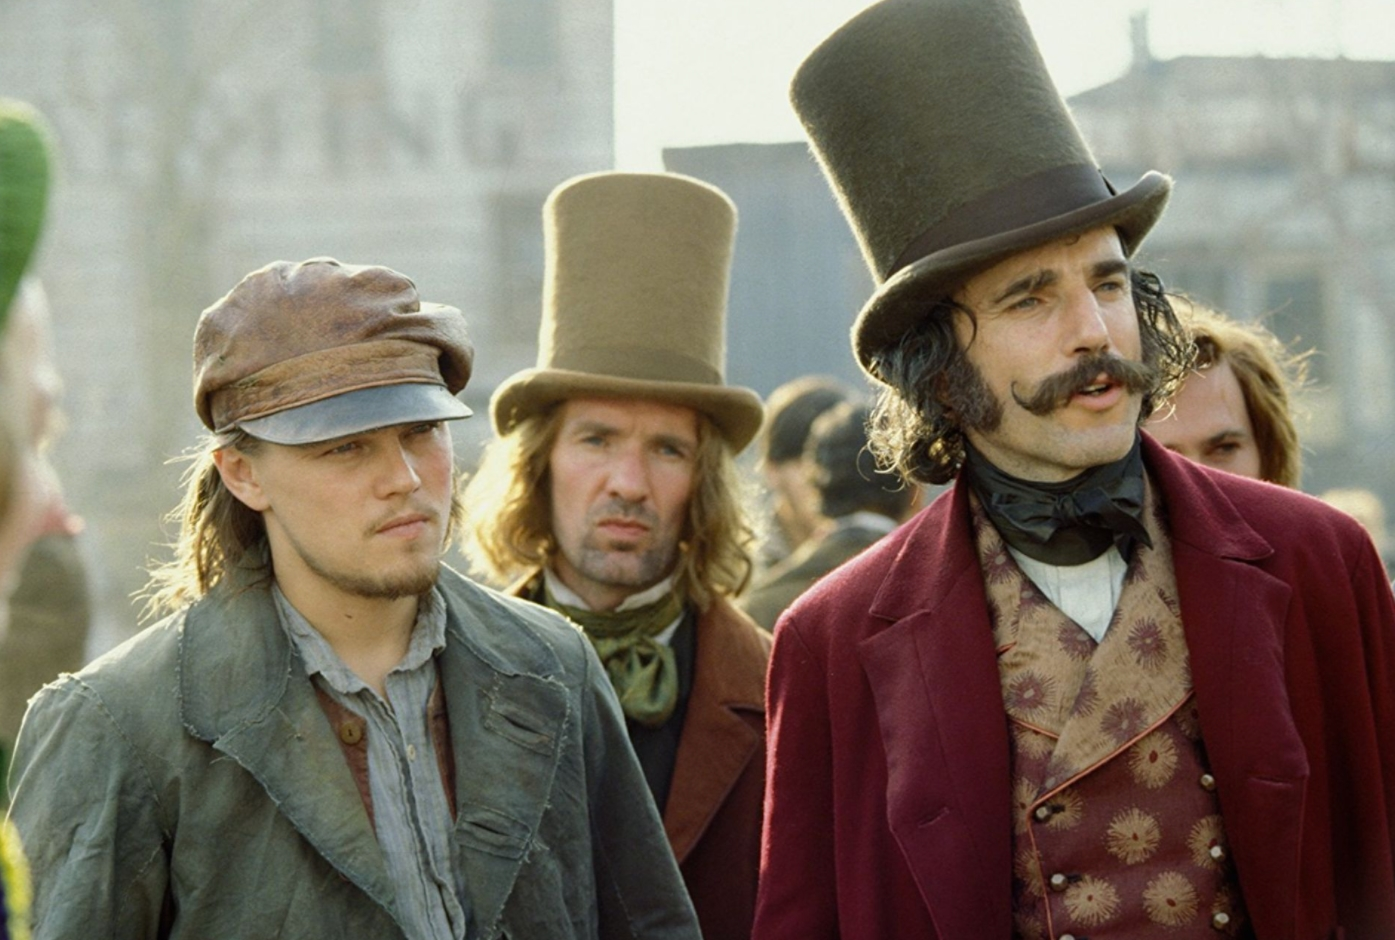 This movie is set in 1862 and is known as _____.